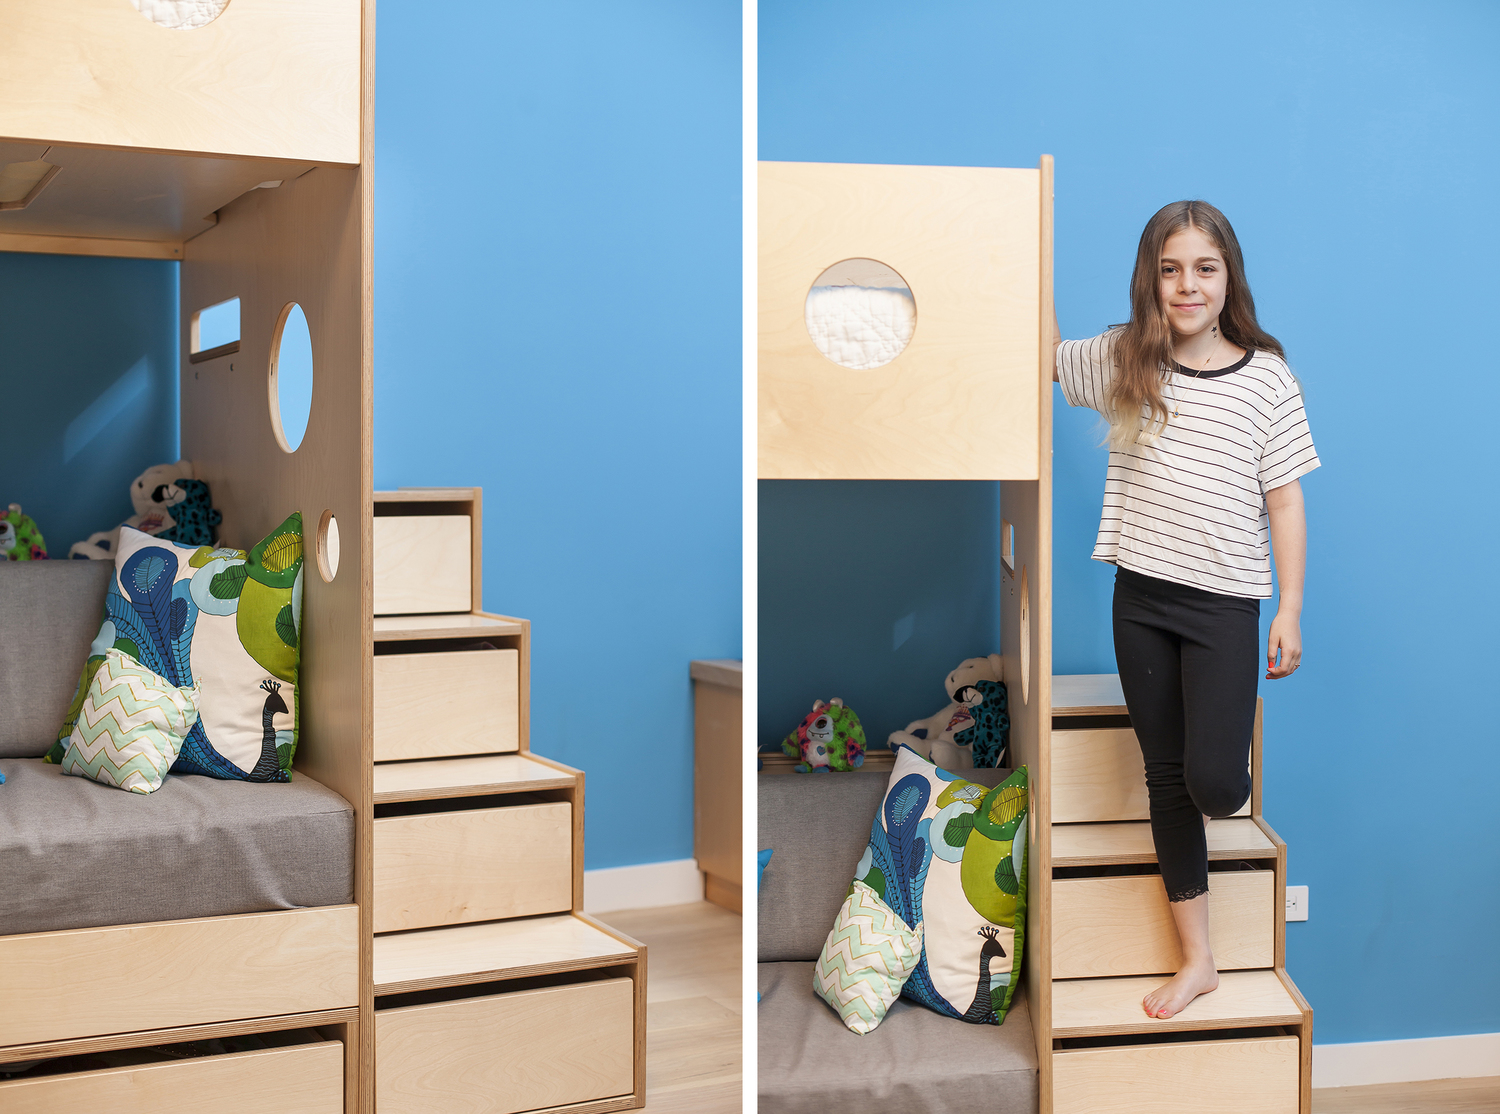 Casa kids custom children's furniture.